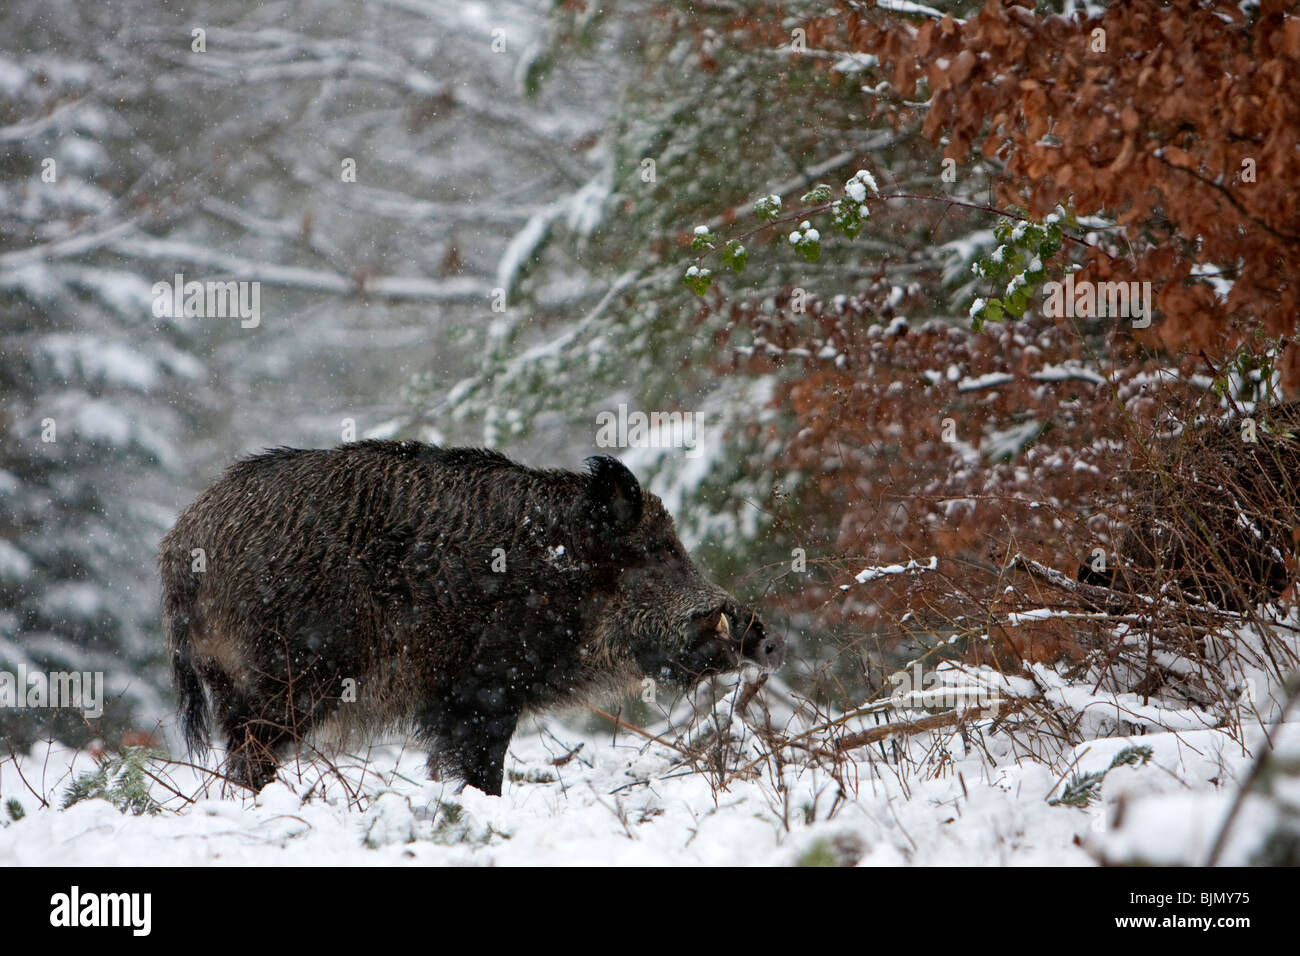 Wild boar in a winter forest Sus scrofa - Stock Image